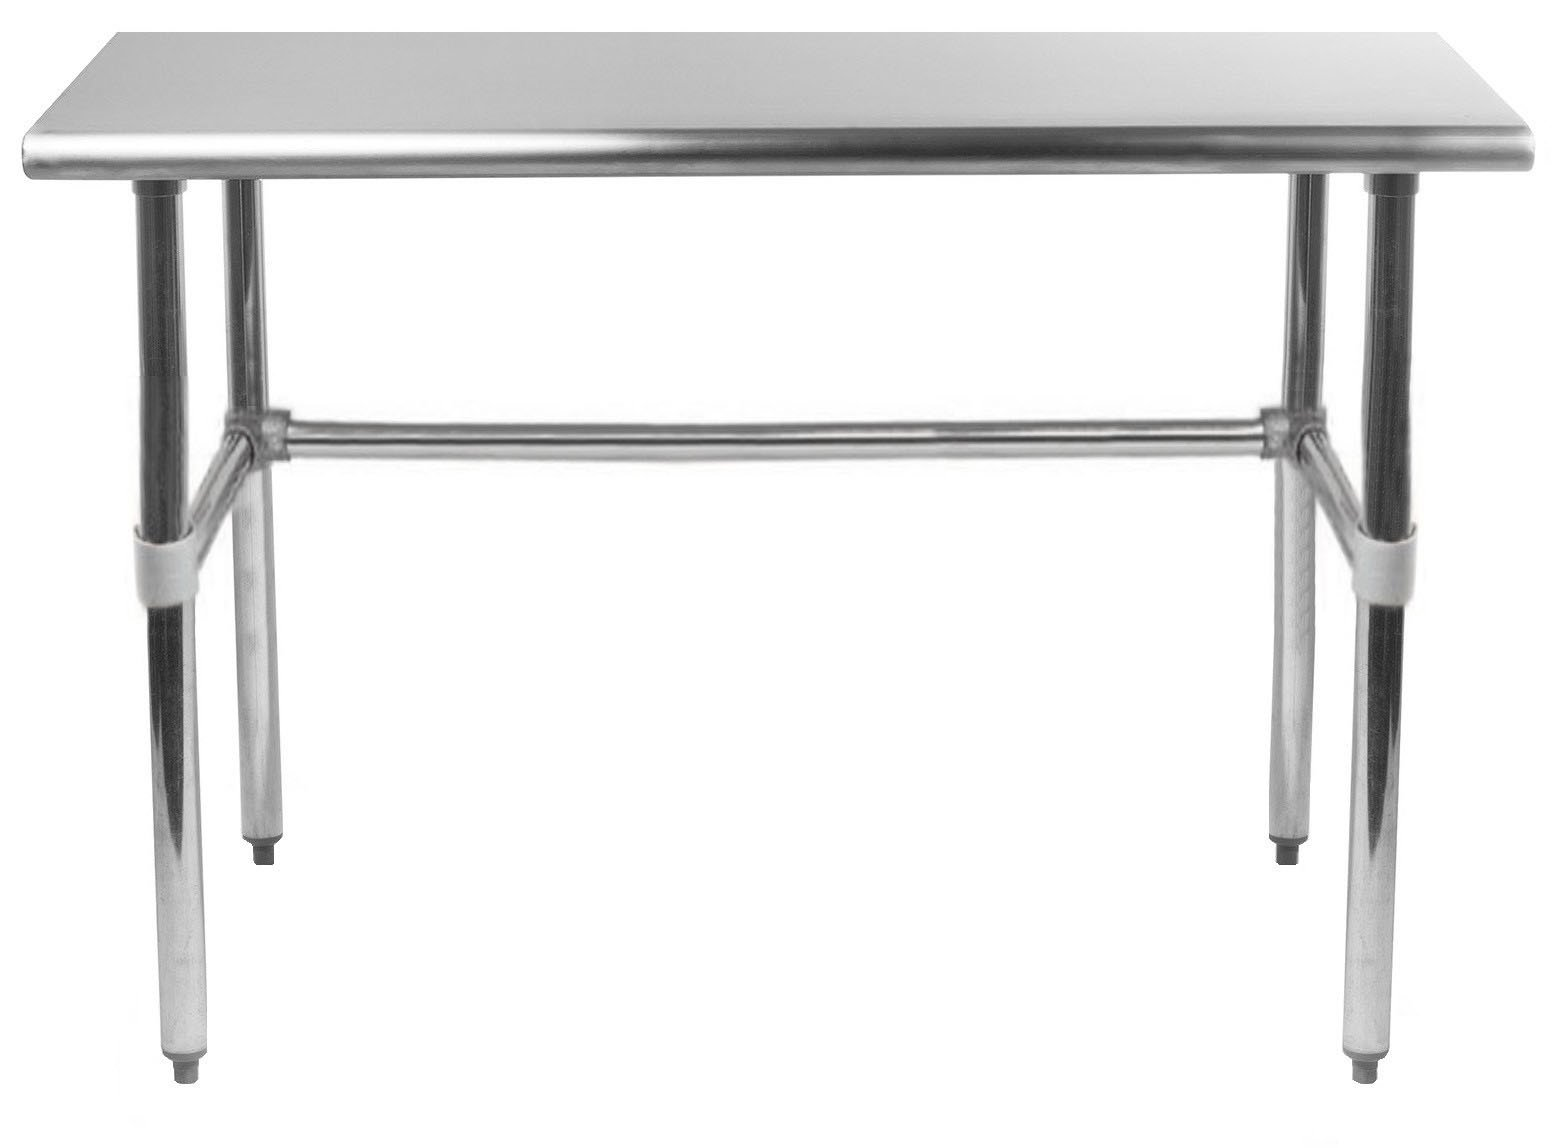 AmGood Stainless Steel Work Table Open Base | Removable Crossbar | NSF Certified | Kitchen Island Food Prep | Laundry Garage Utility Bench (36'' Long x 24'' Deep)